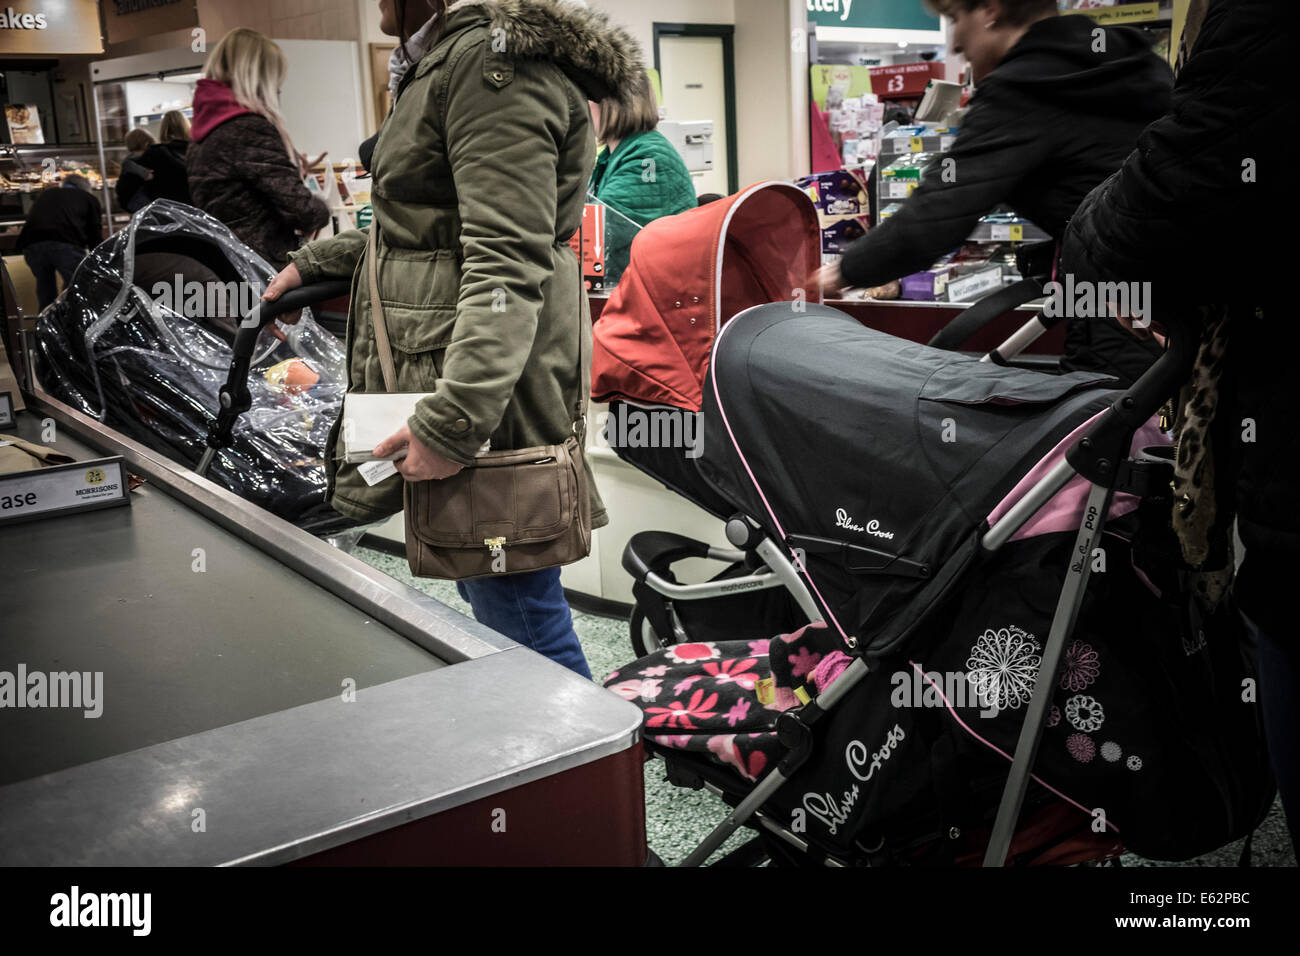 Supermarket stroller traffic jam at the checkout as young mums shop together - Stock Image